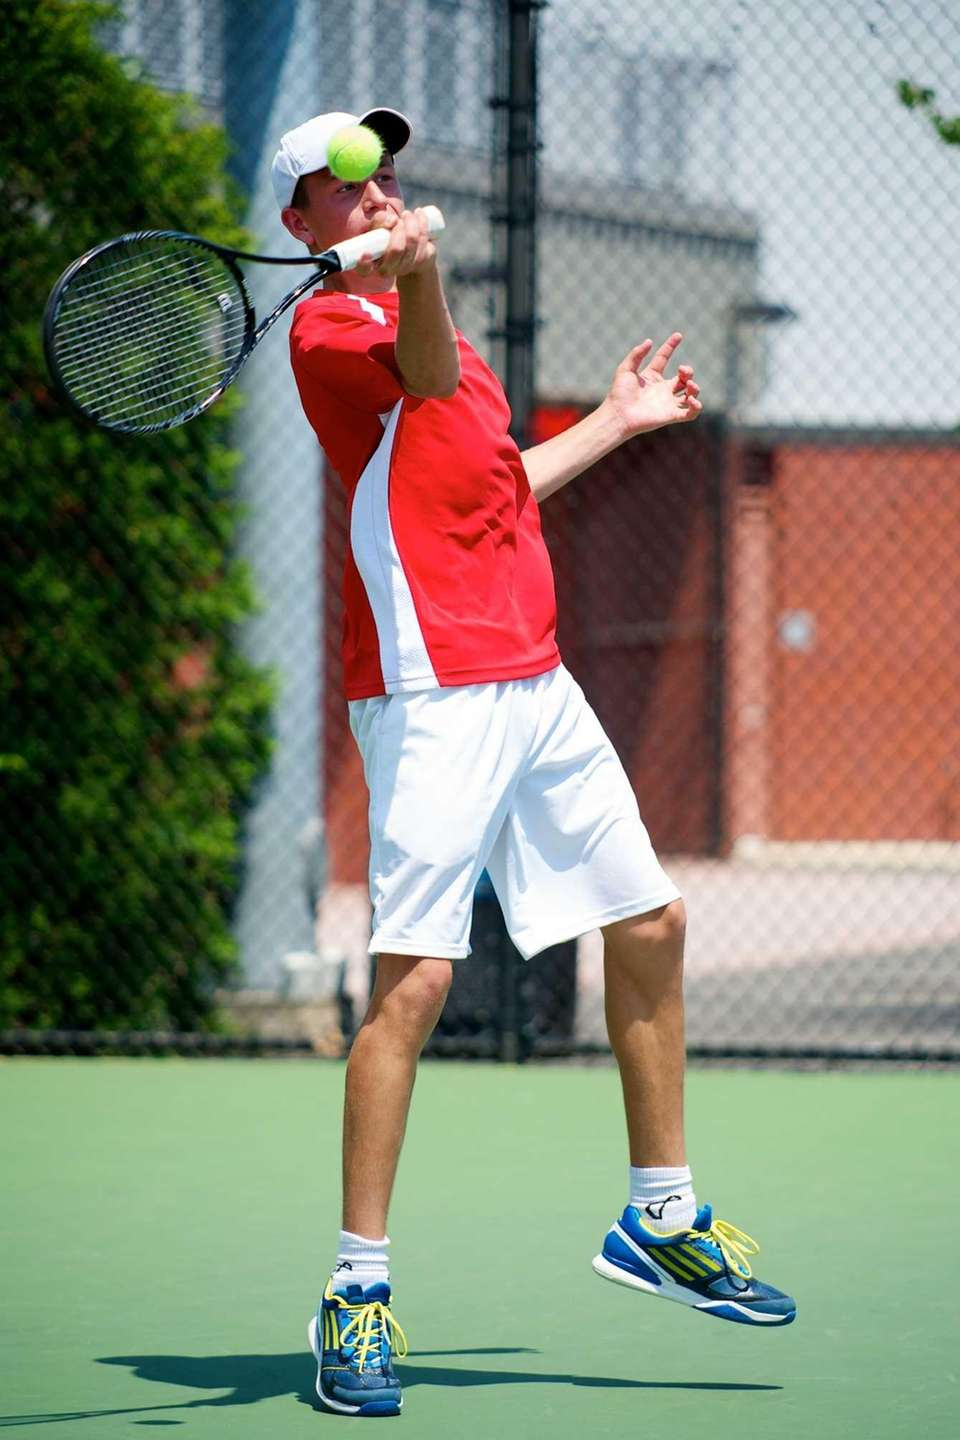 Kyle Apler of Half Hollow Hills East serves